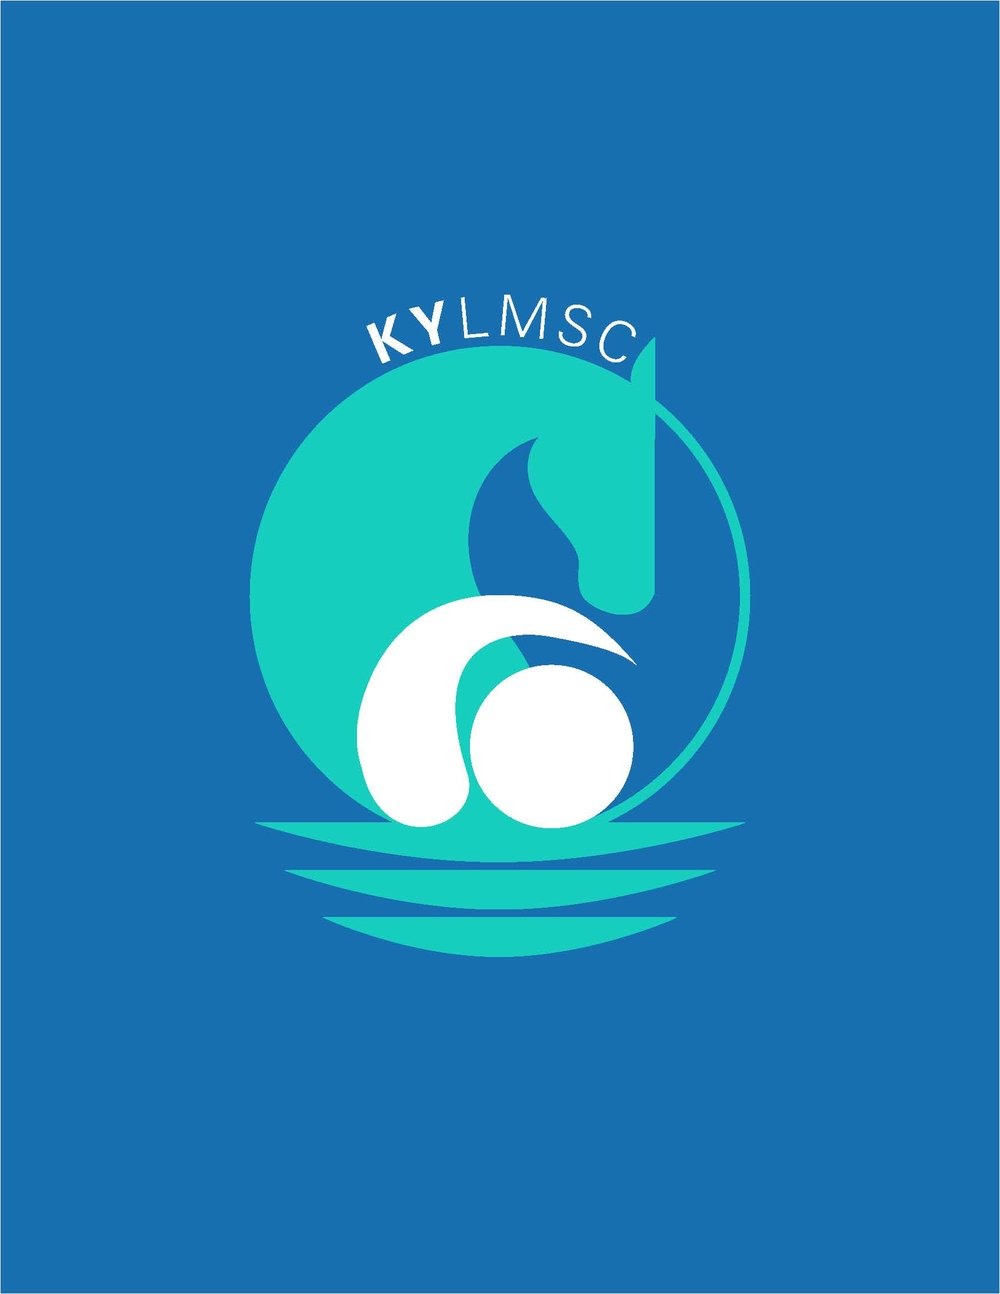 Duck Enander's design for the new KY-LMSC logo seeks to represent every swimmer in the Kentucky LMSC.